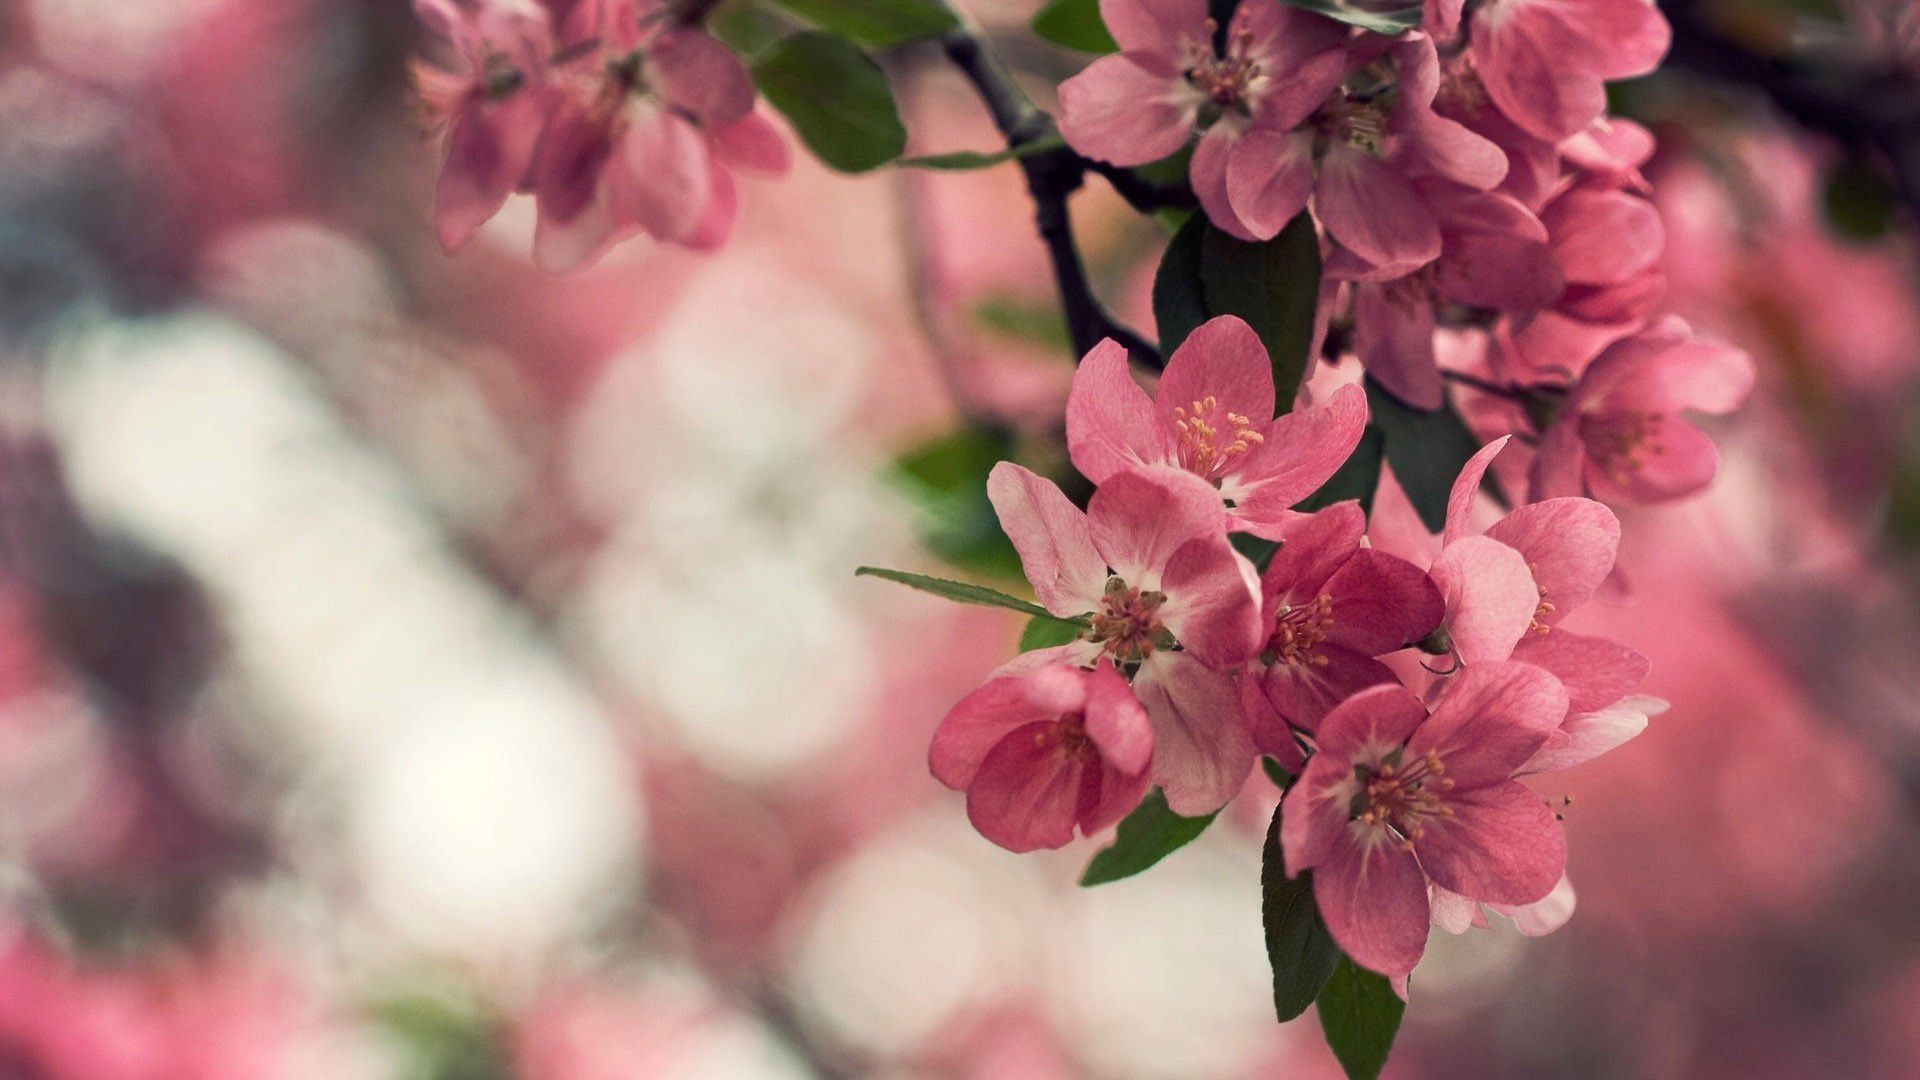 Permalink to Beutiful Blossoms Flower Wallpaper